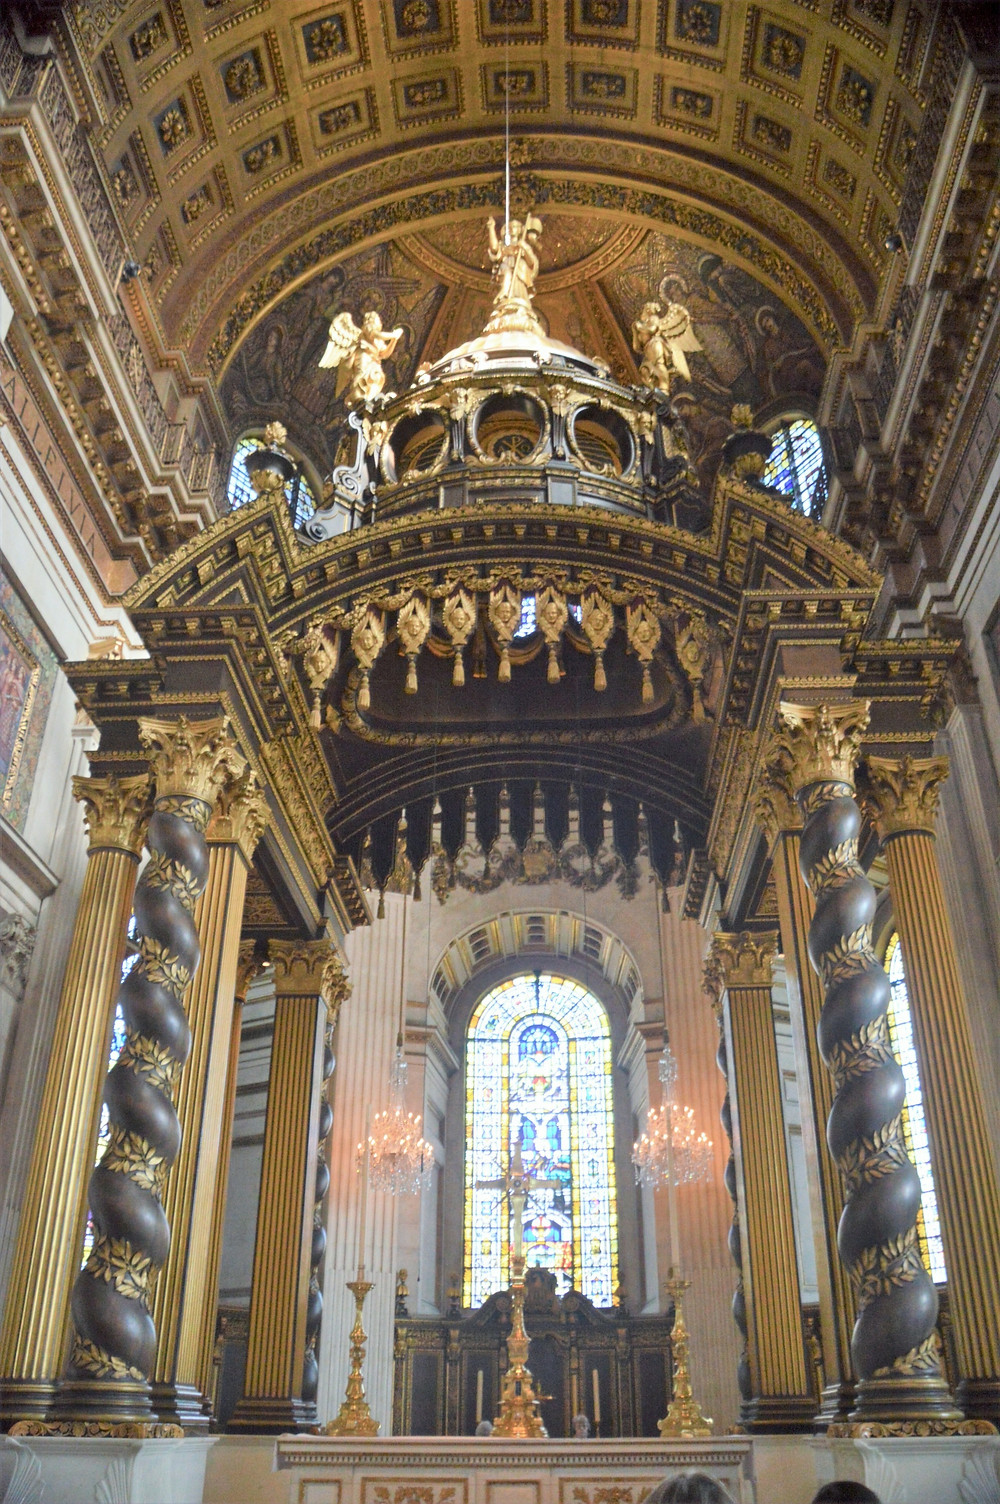 The current high altar of St Paul's Cathedral dates from 1958 and is made of marble and carved and gilded oak